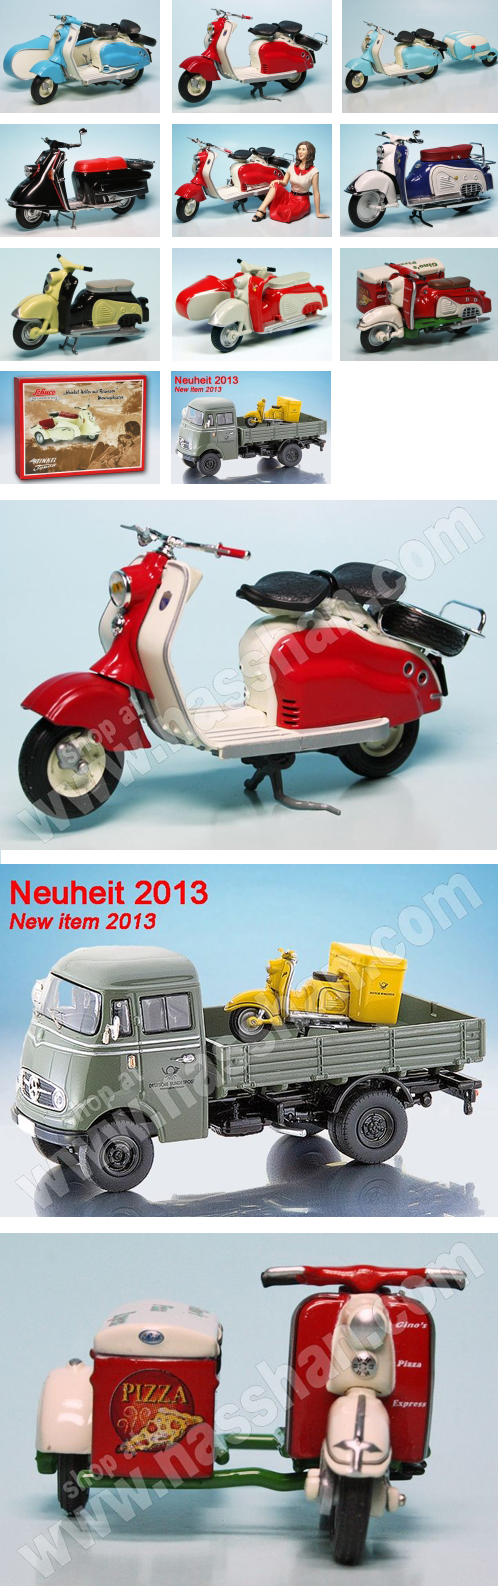 Scooter Lambretta Heinkel Zundapp Bella Scale Models